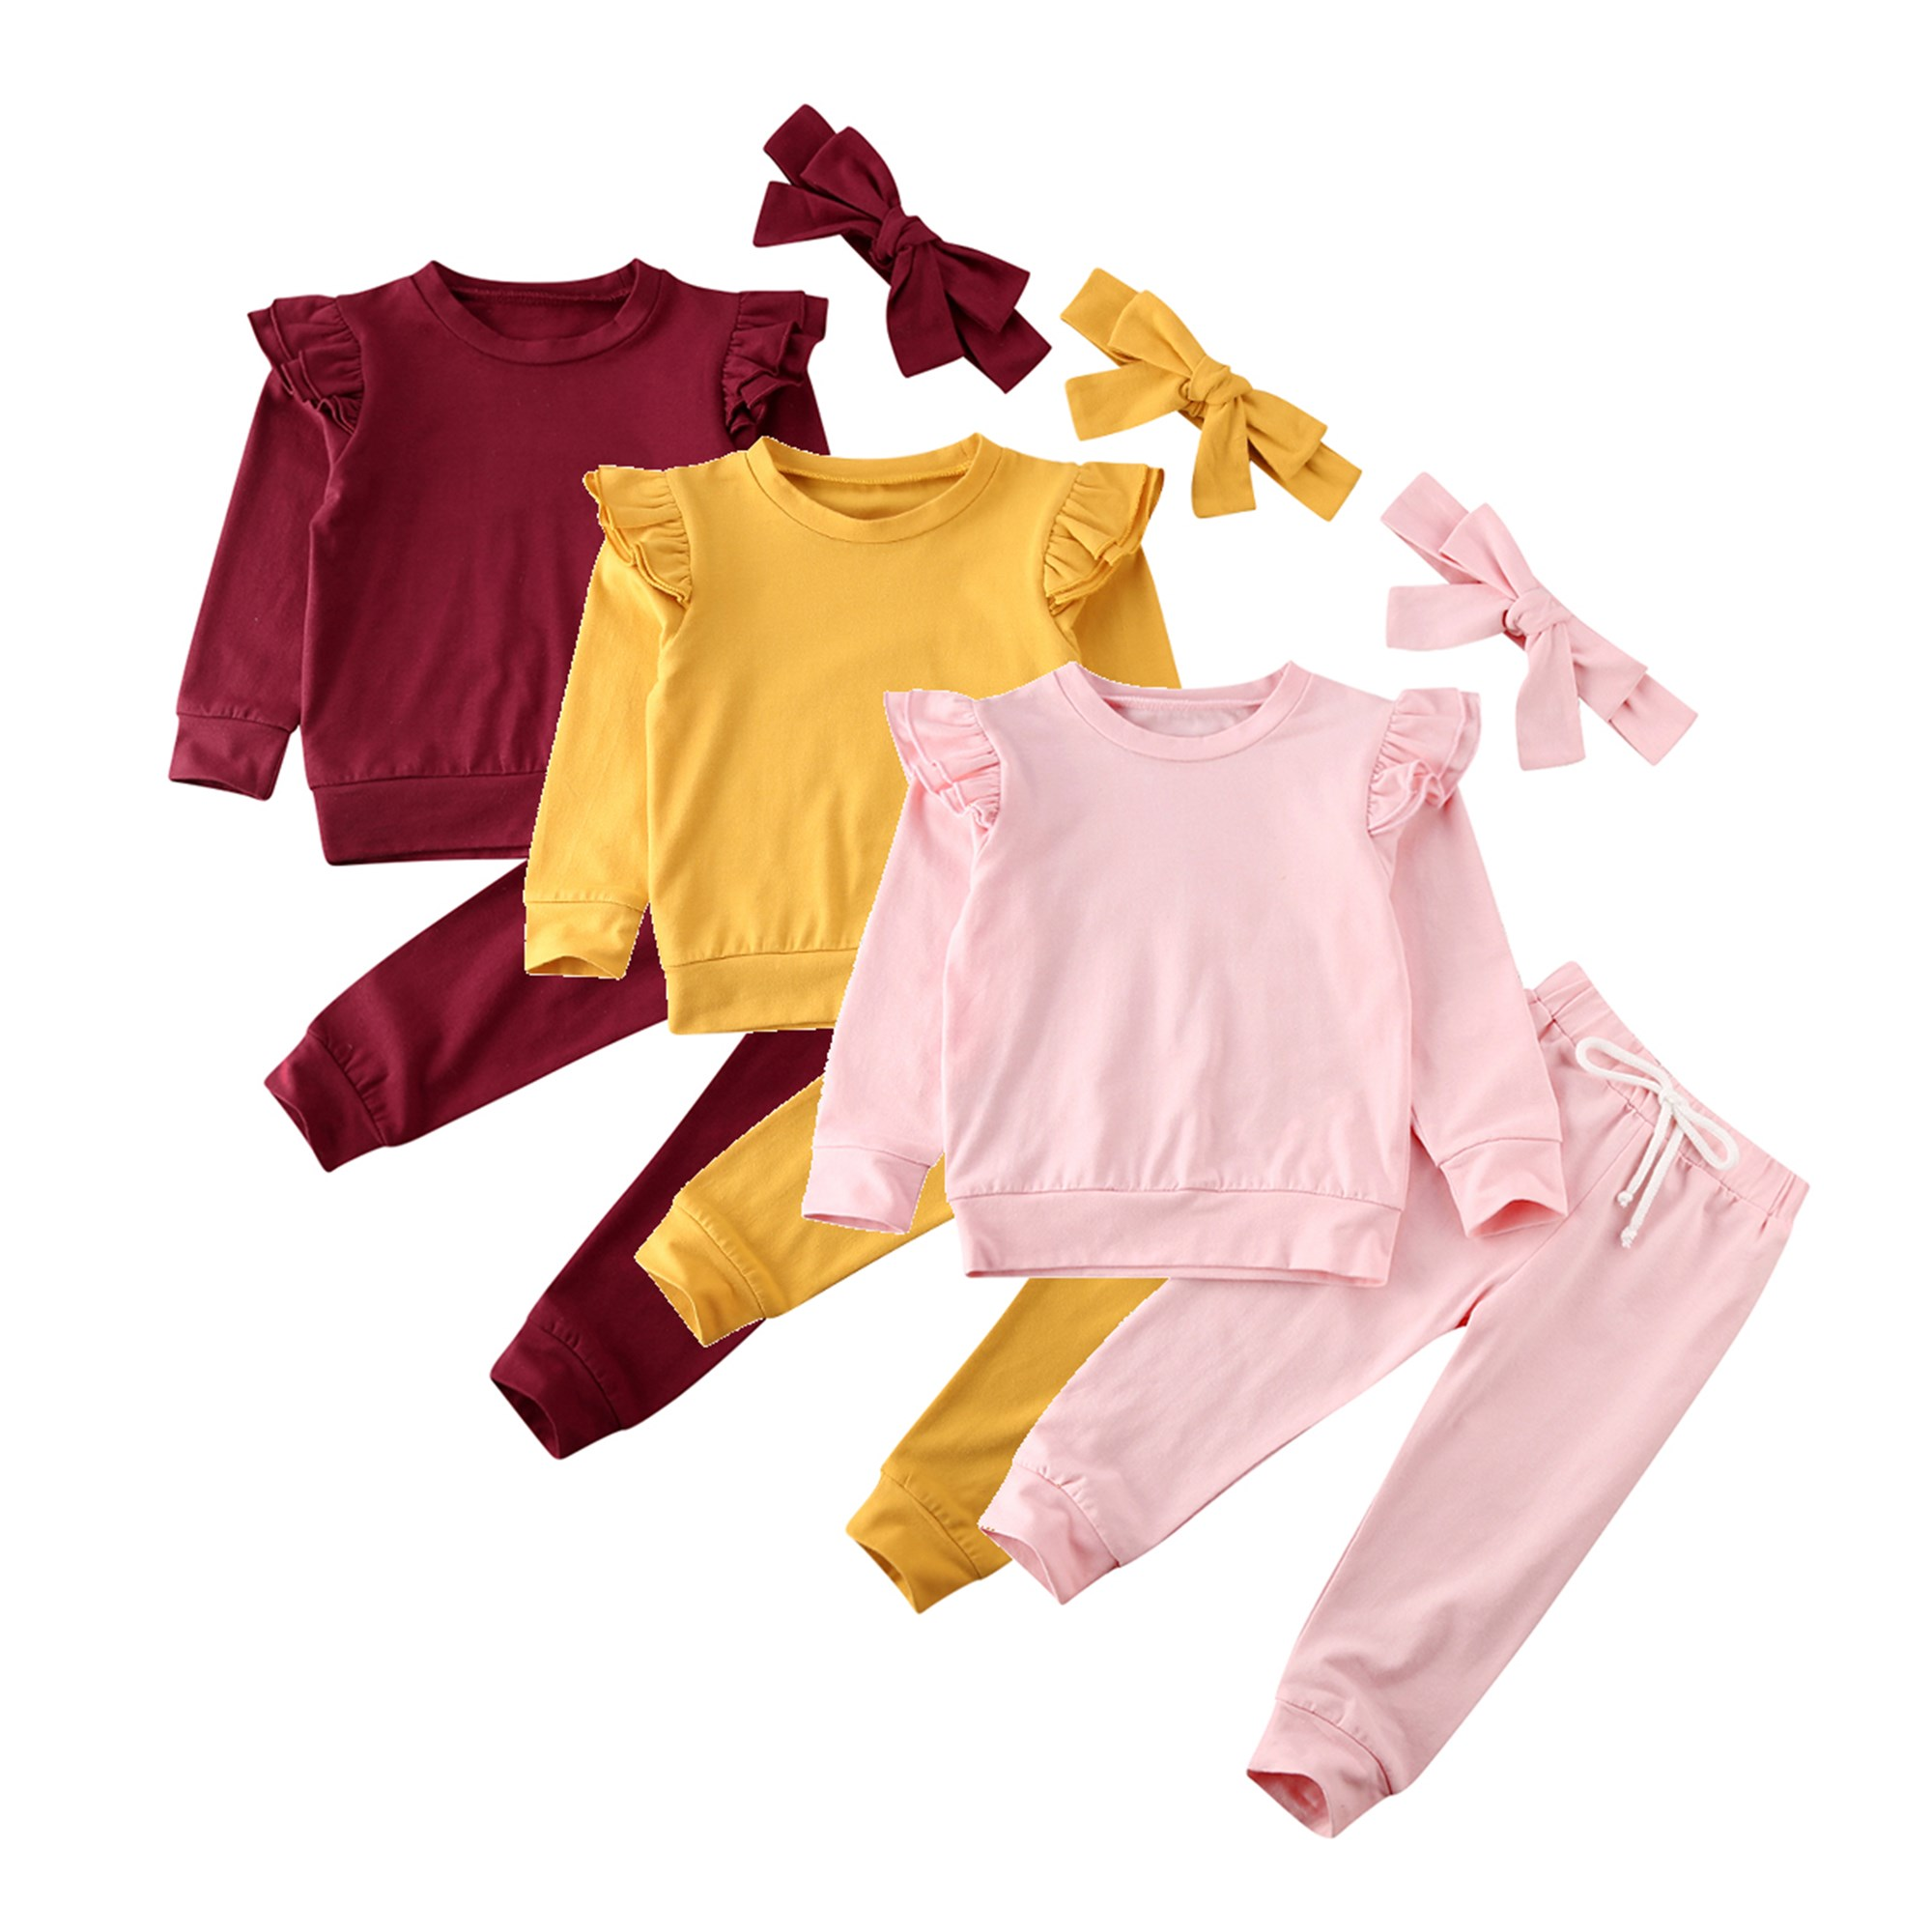 Toddler Baby Girl Clothes Sweatshirt Top Pants Infant Outfits Sets Tracksuit